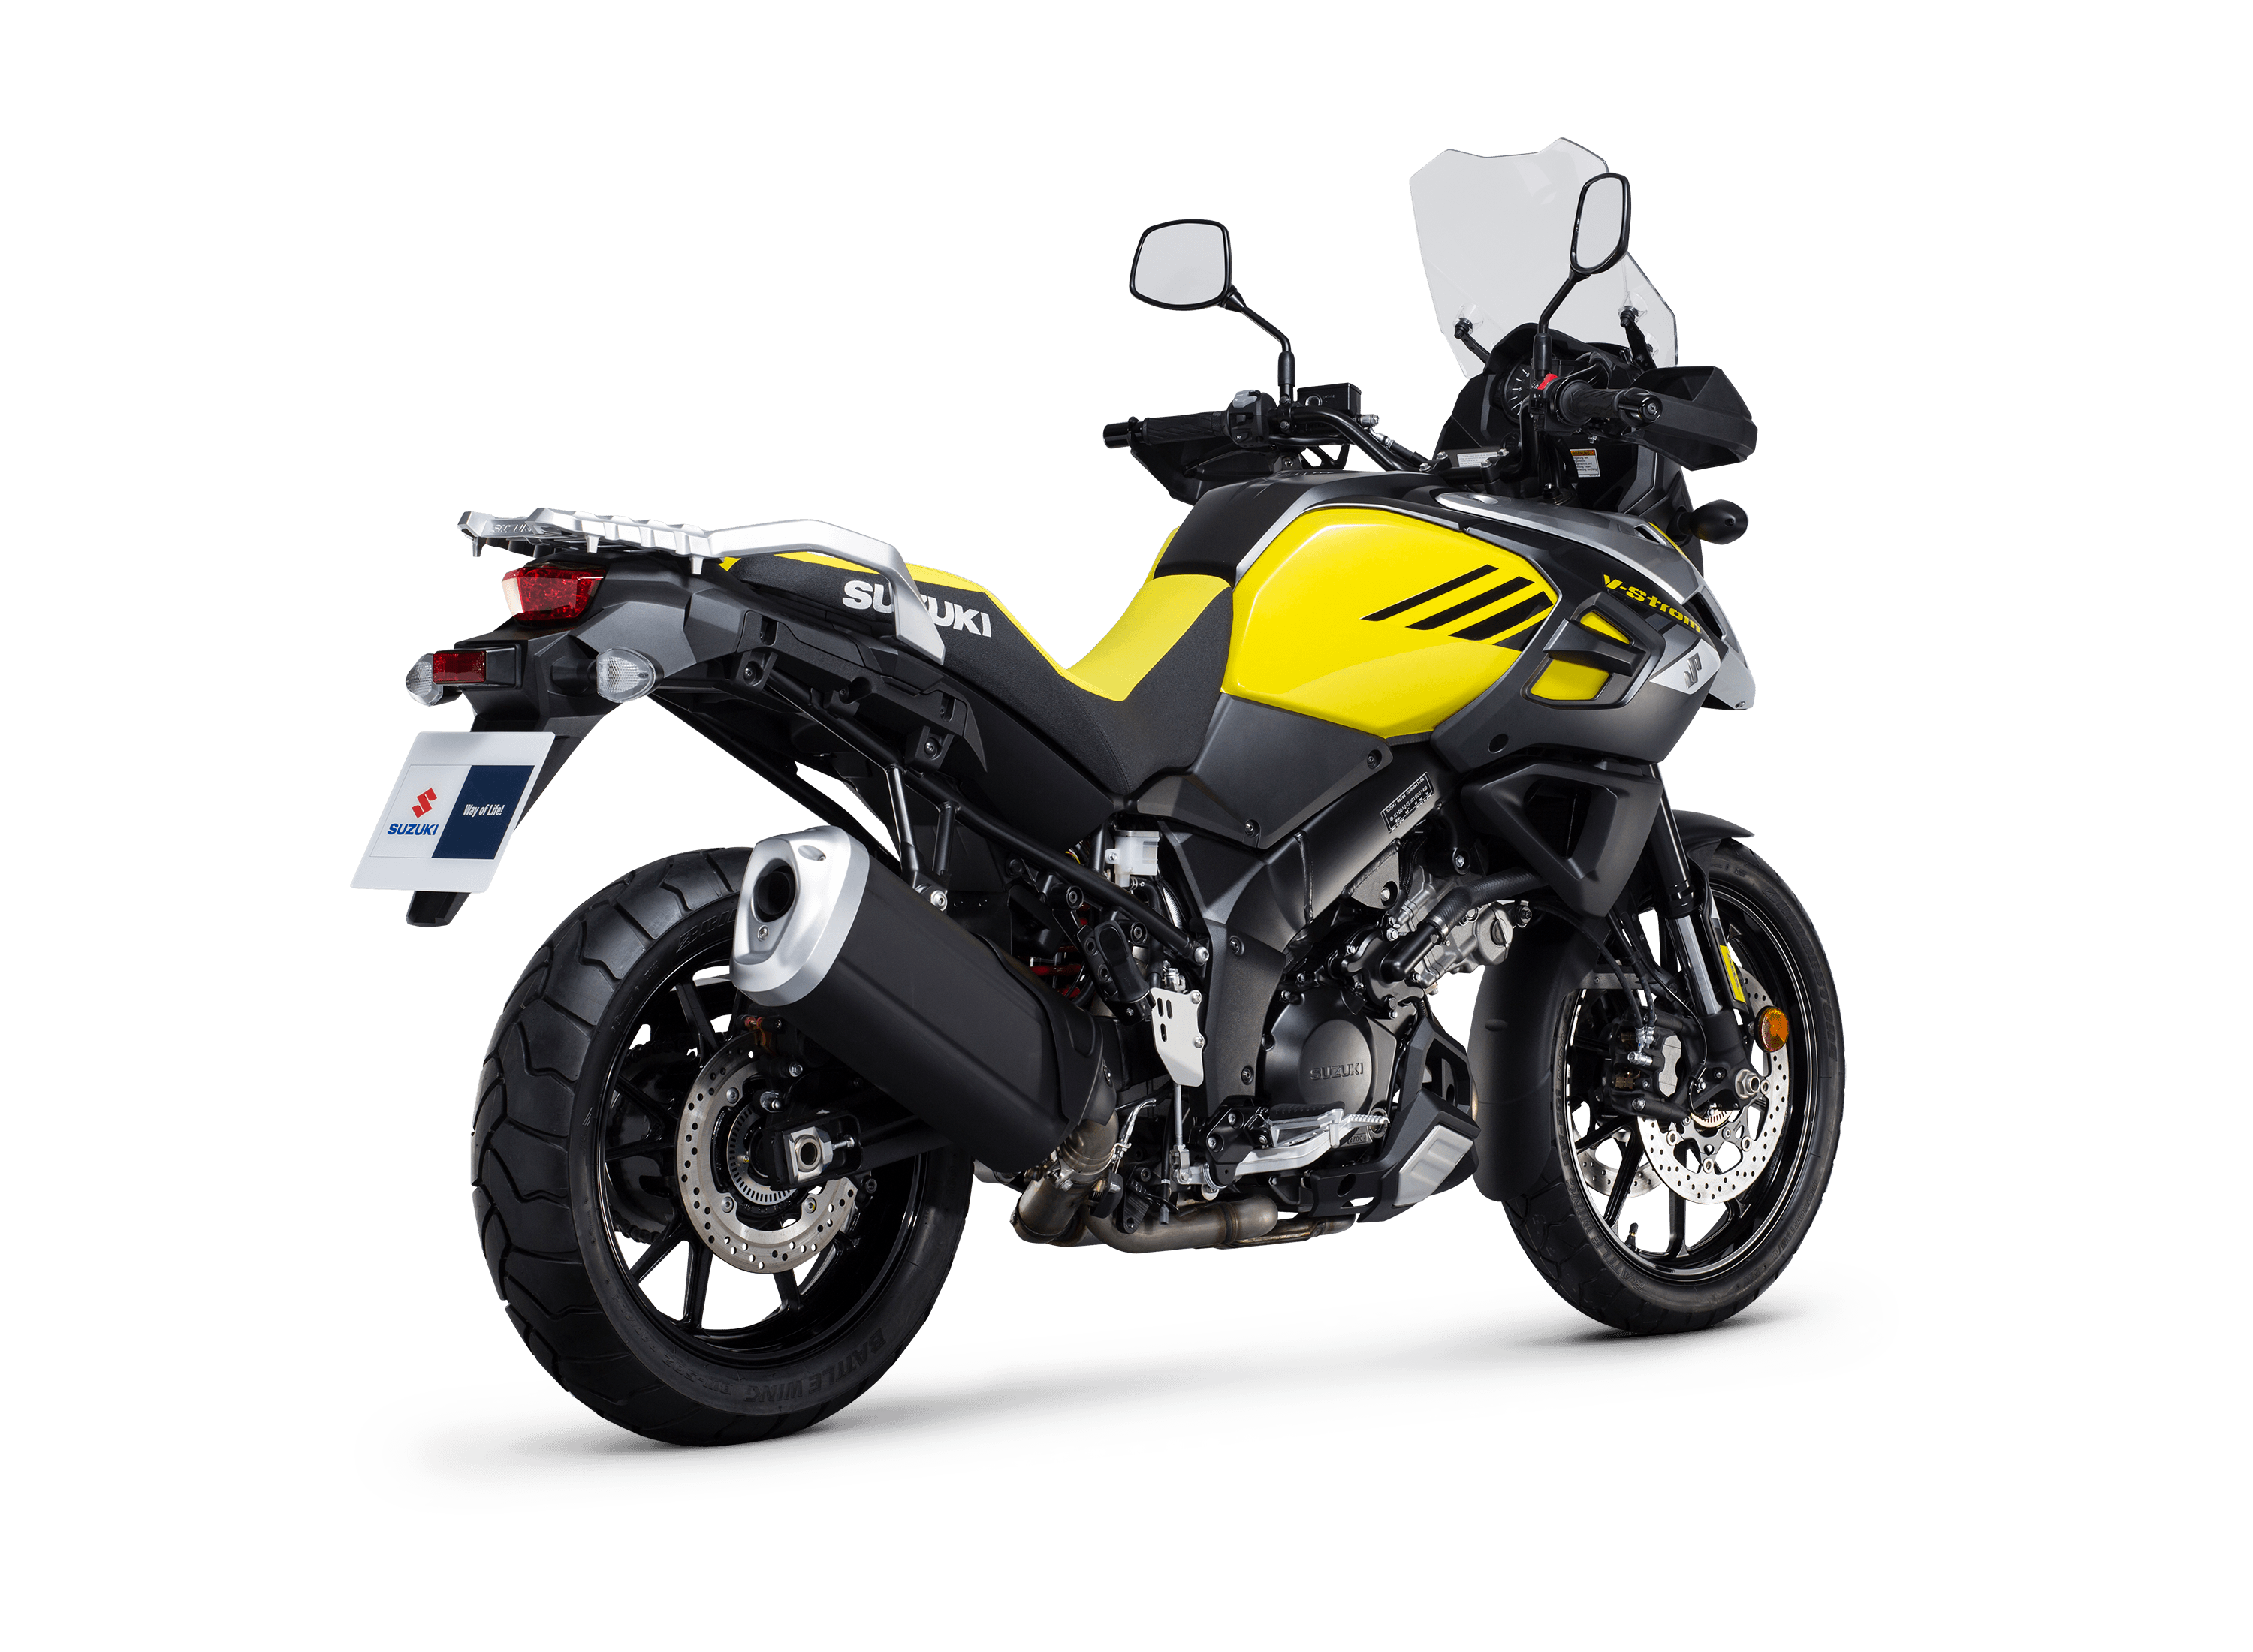 lrv strom_1000_yellow_rear34_facing_right?anchor=center&mode=crop&width=1000&height=733&rnd=131302573040000000 suzuki v strom 1000 suzuki bikes uk 2003 Suzuki SV650 at fashall.co